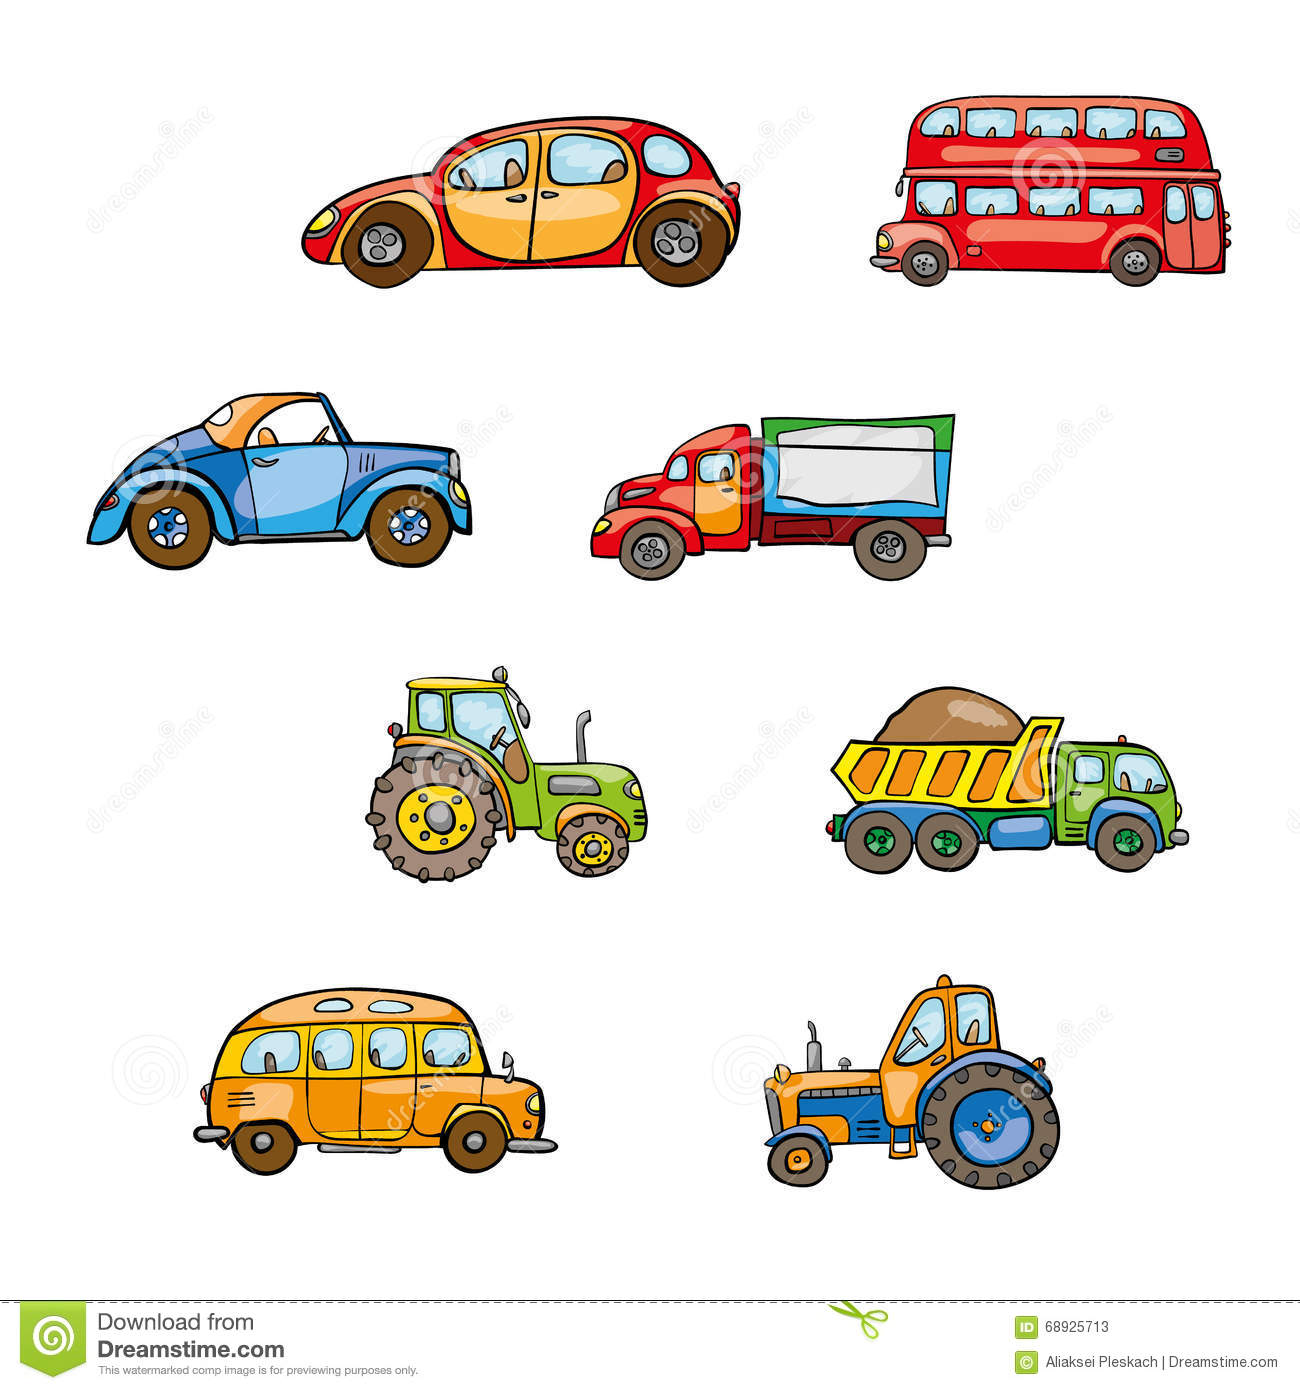 Toy car activities for toddlers 15